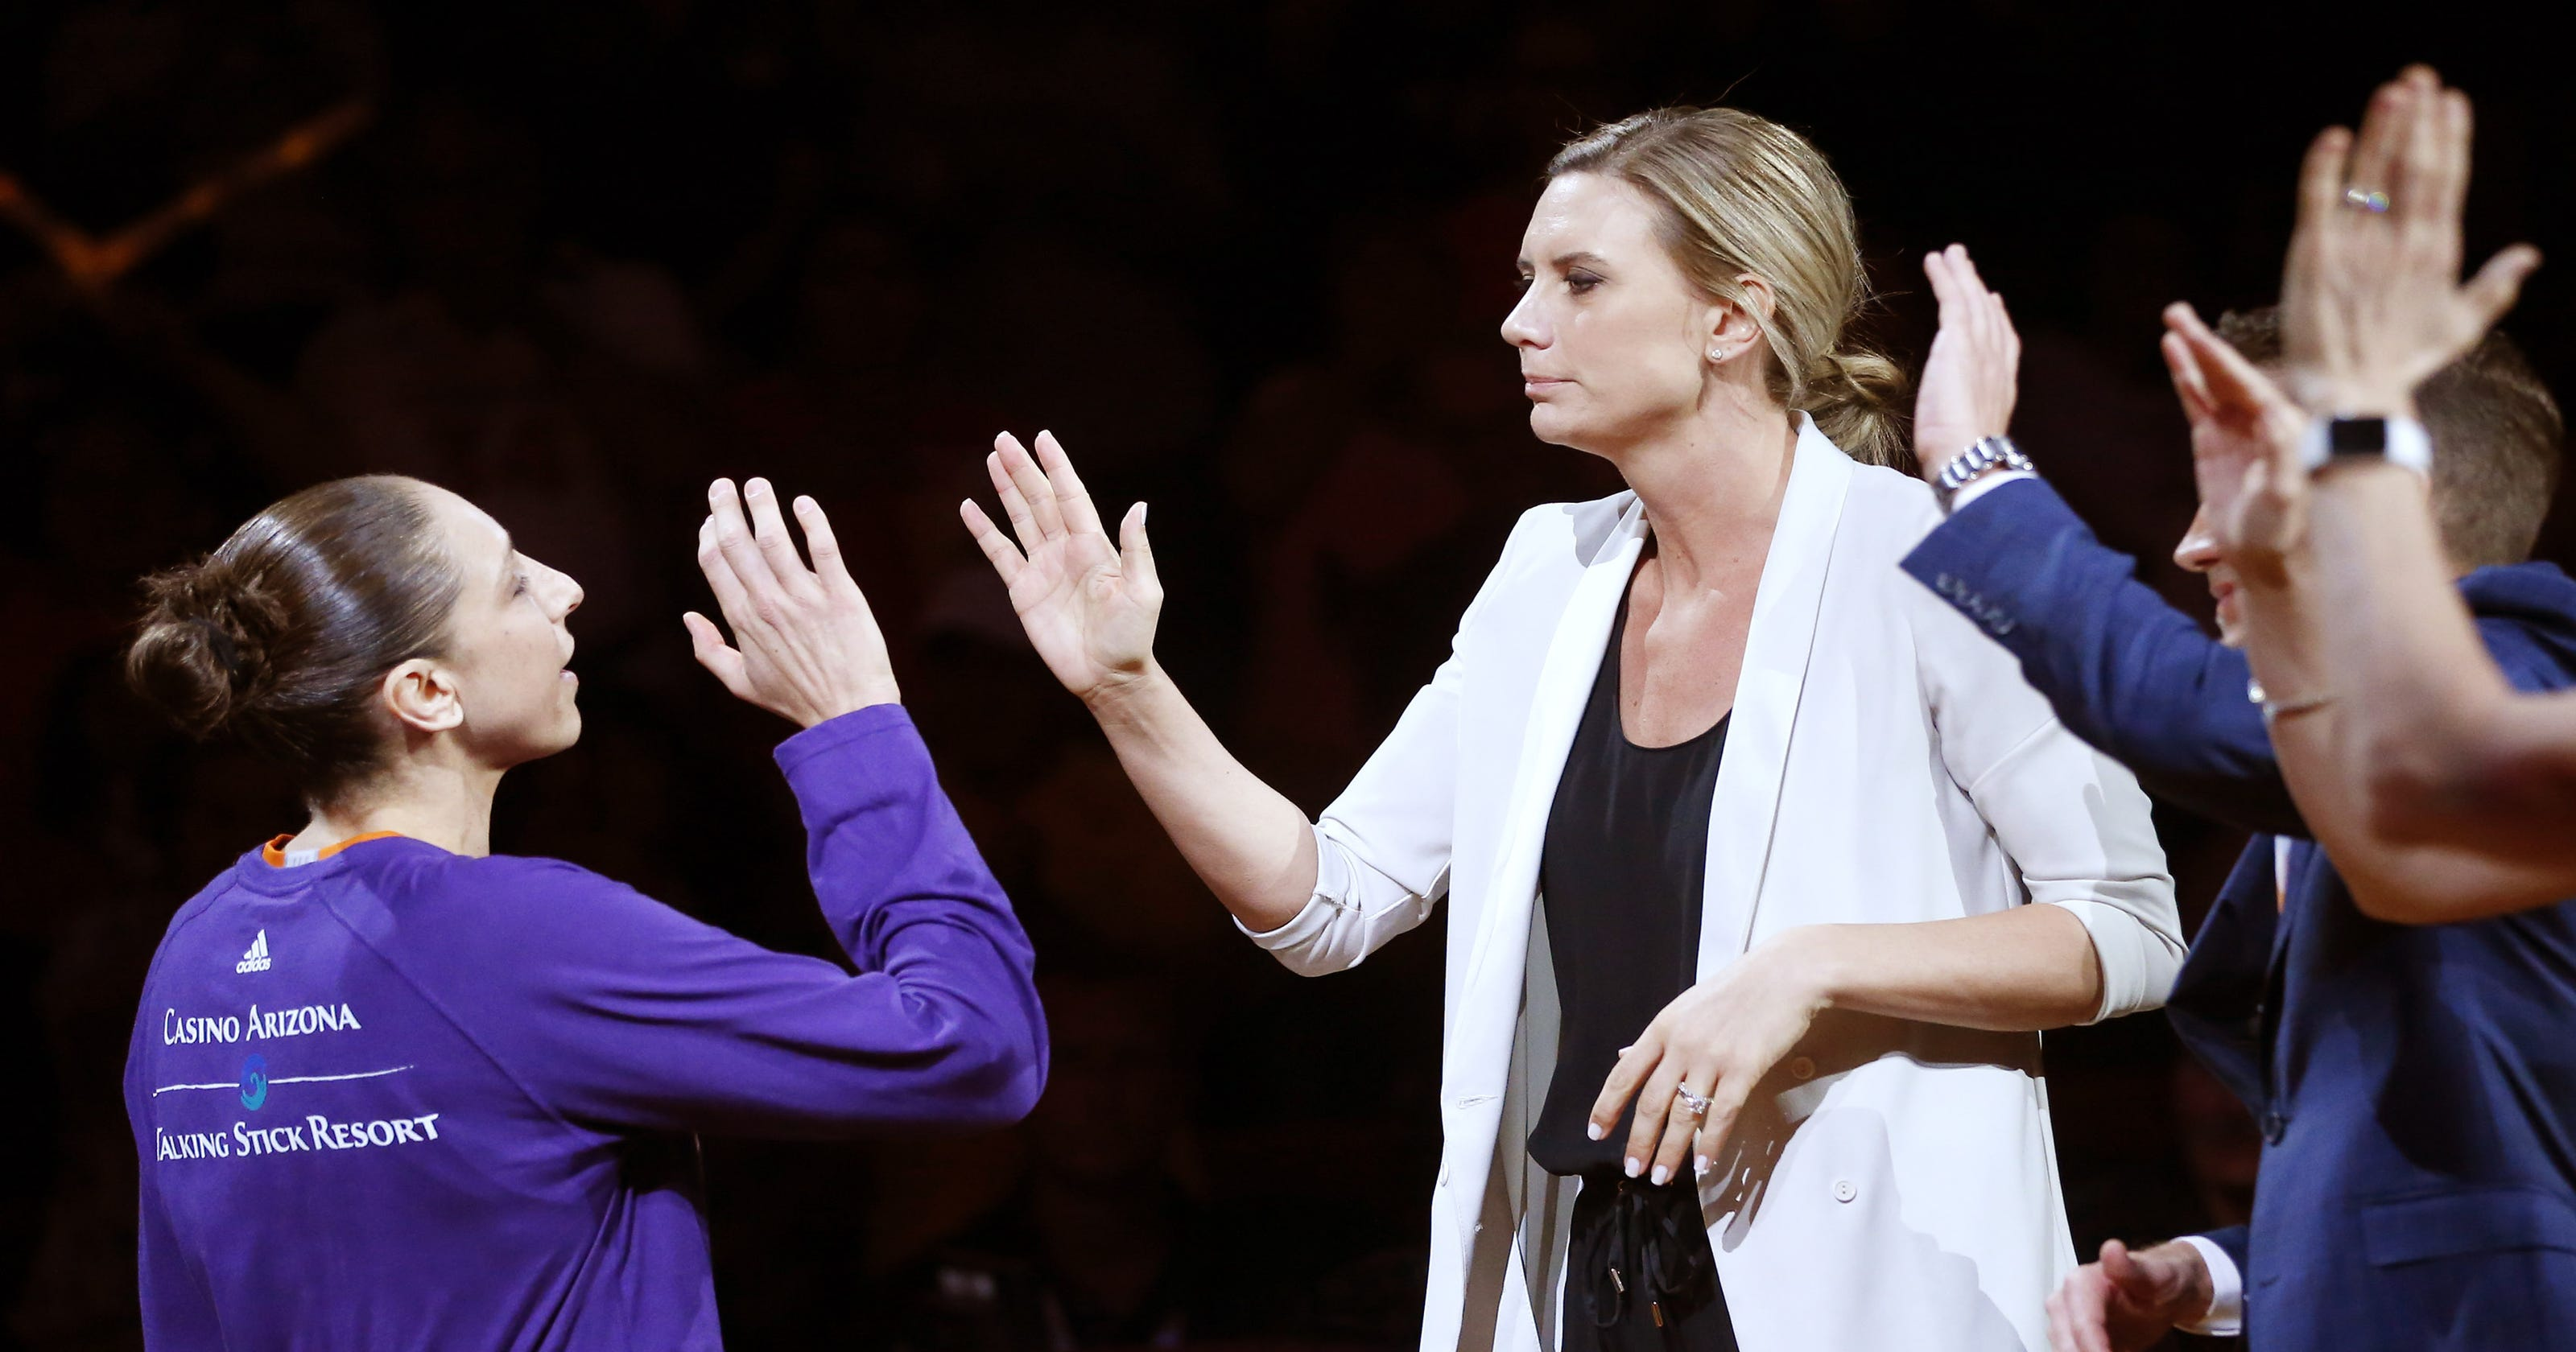 Diana Taurasi Wedding.Mercury Star Diana Taurasi Marries Former Mercury Player